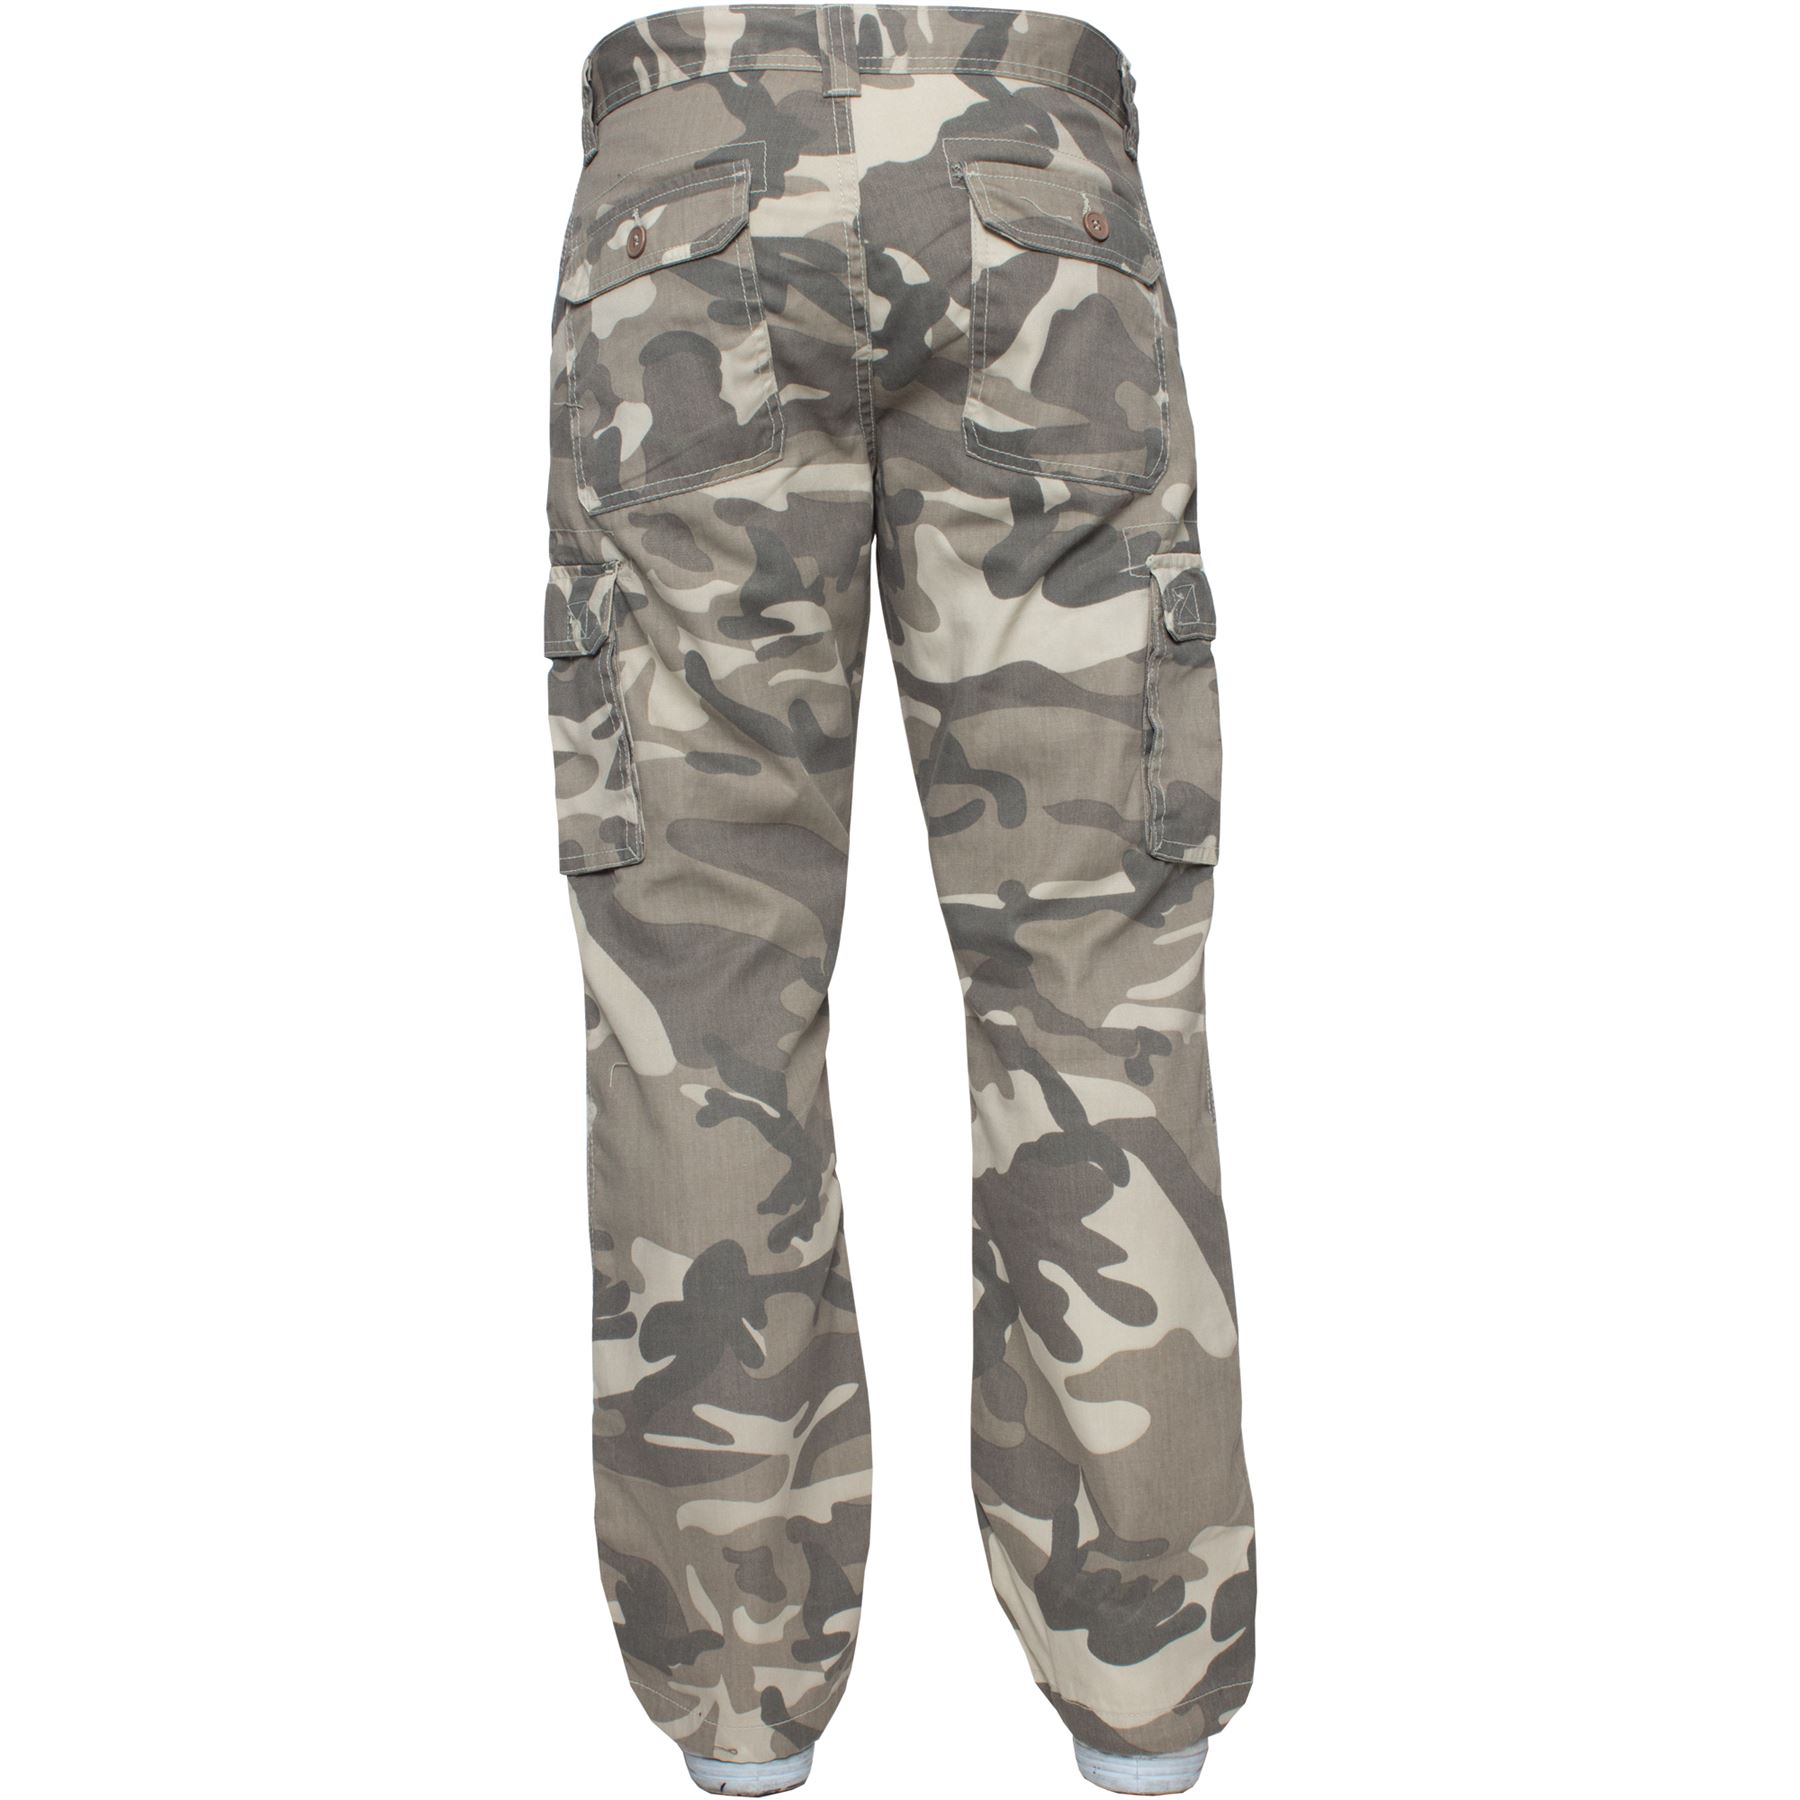 Kruze-Mens-Military-Combat-Trousers-Camouflage-Cargo-Camo-Army-Casual-Work-Pants thumbnail 7